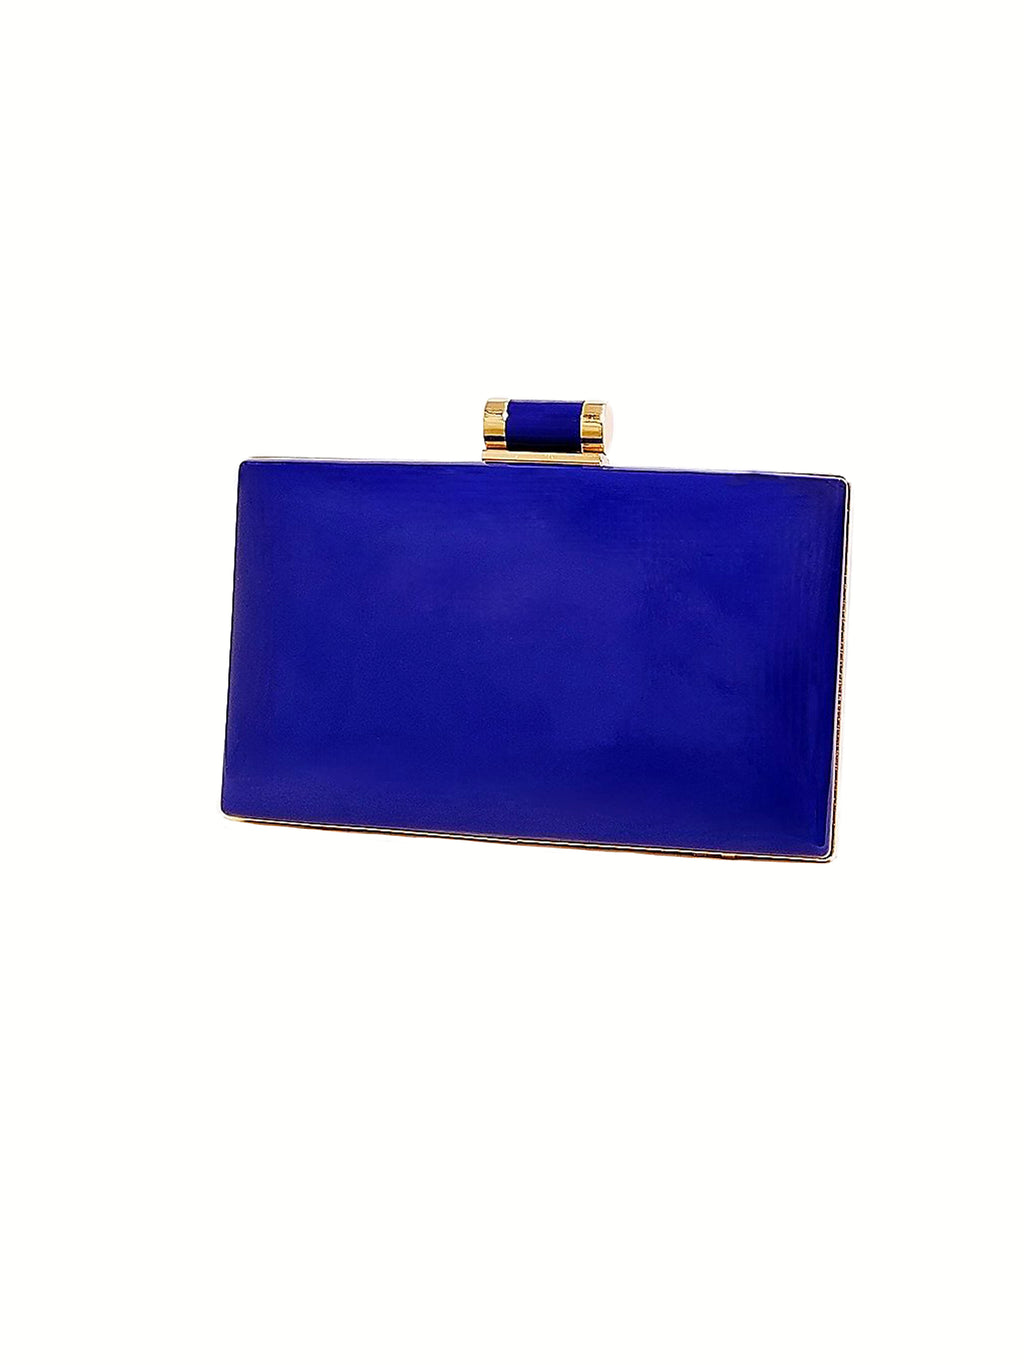 Square Patent Clutch